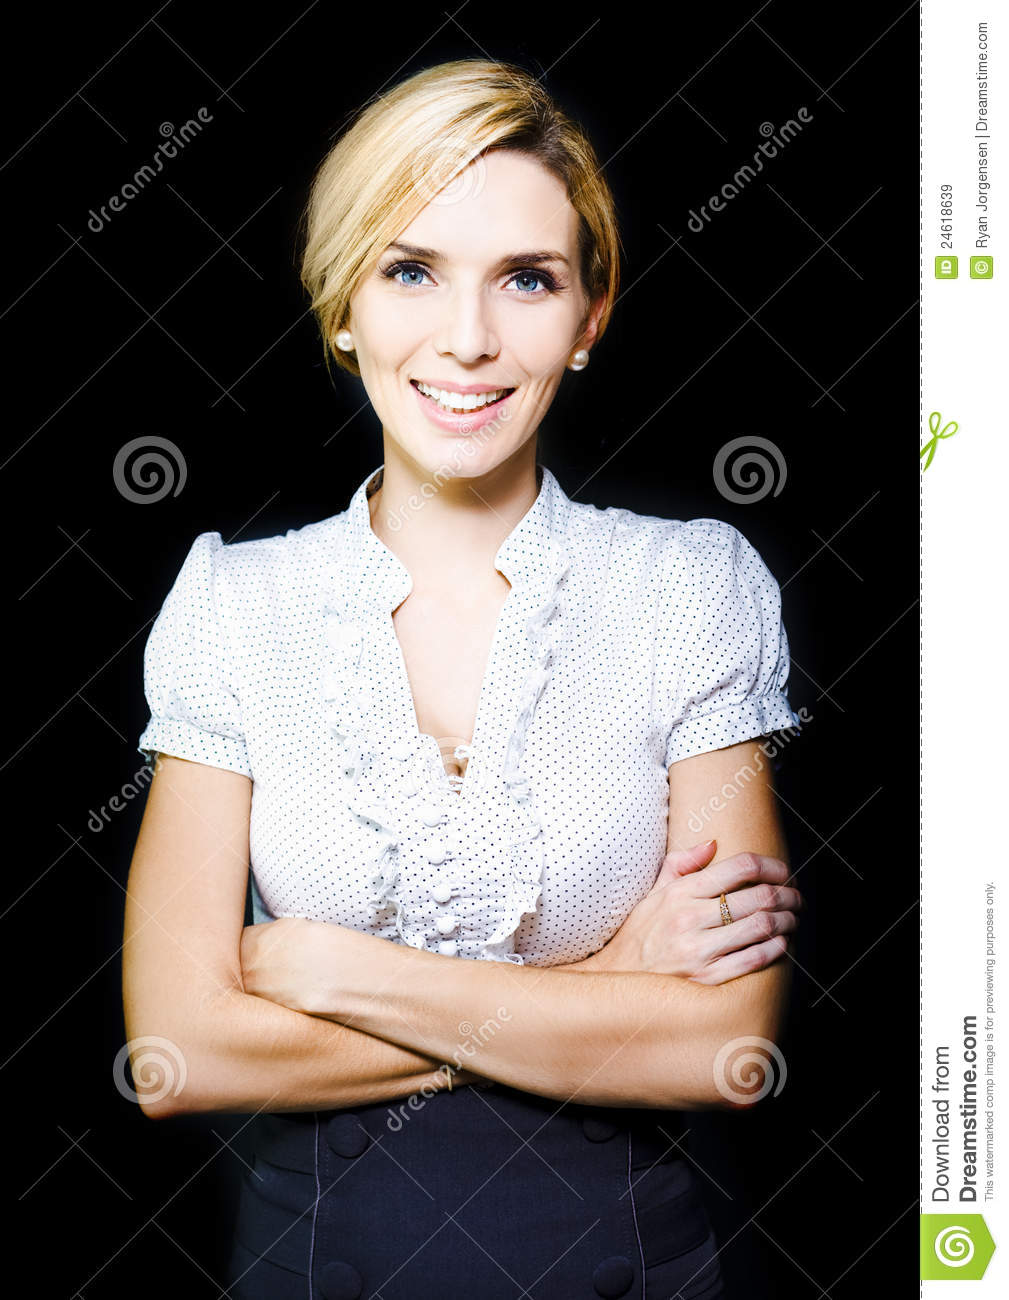 Happy Positive Female Business Person With Smile